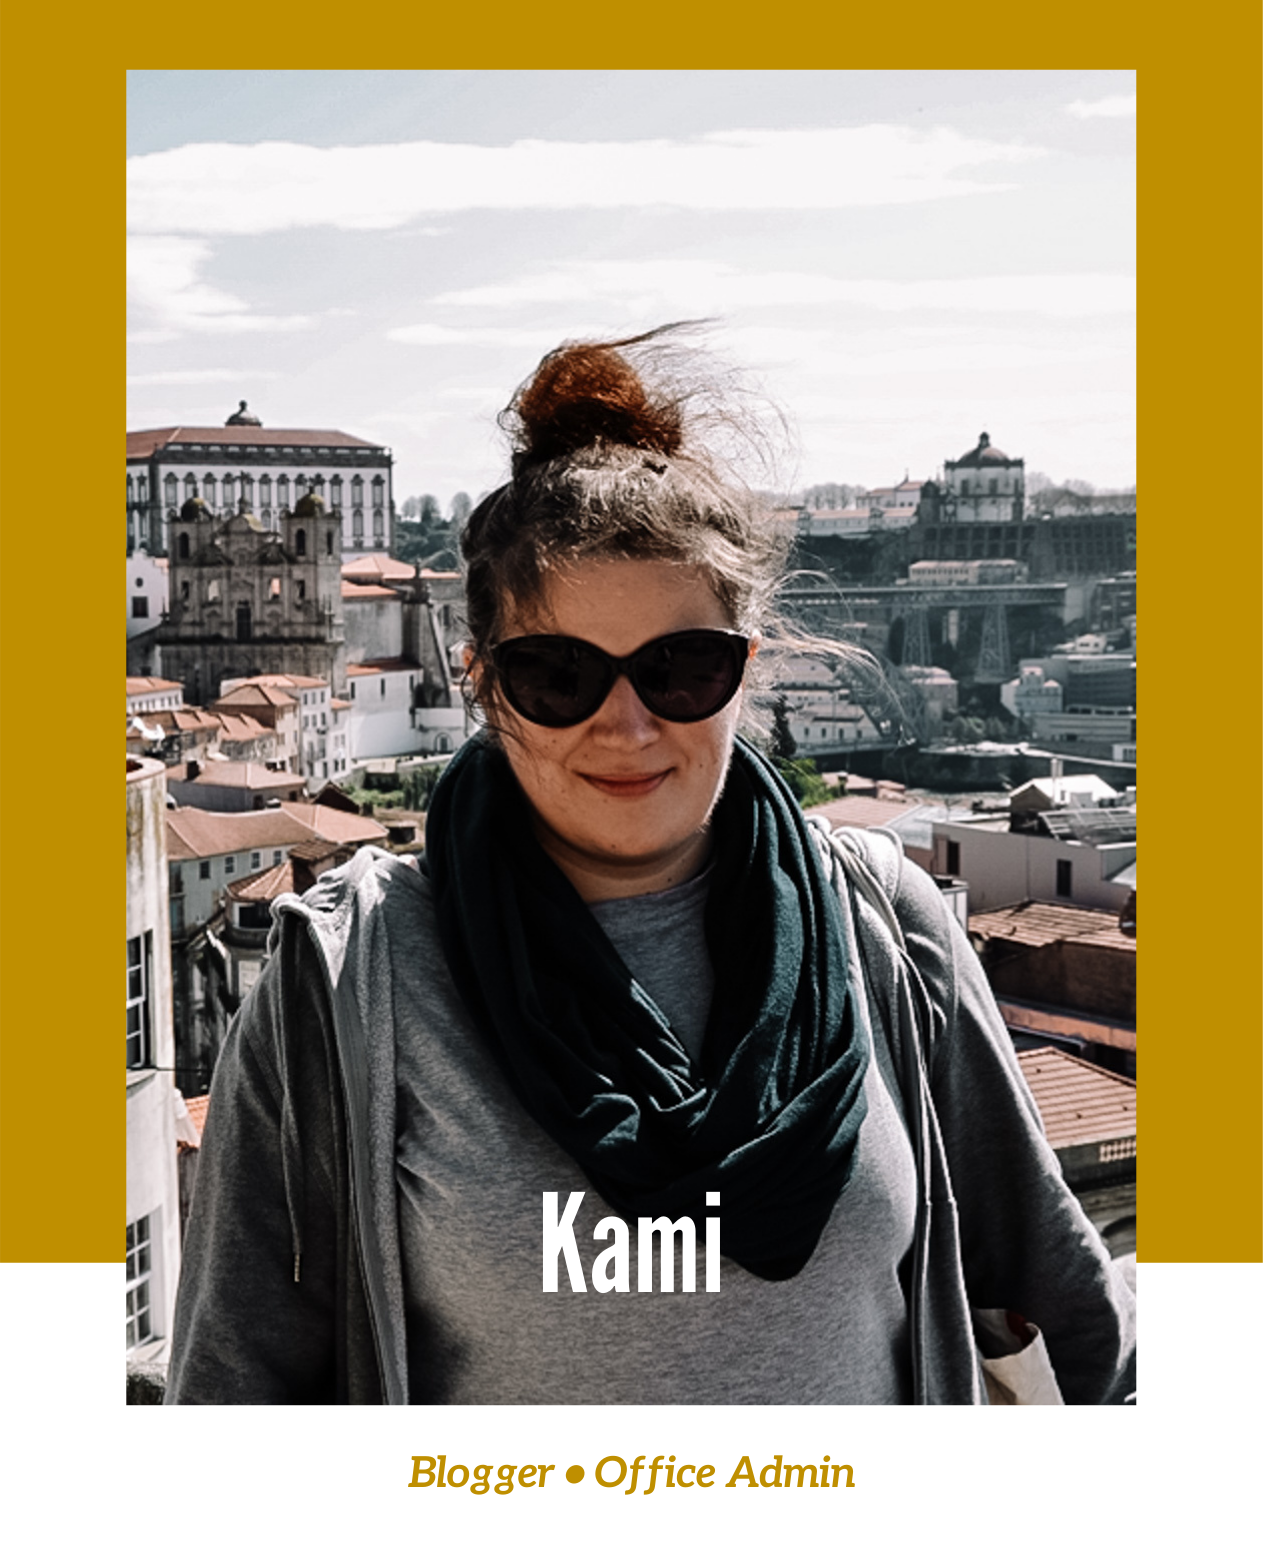 Kami is a Blogger and Office Admin